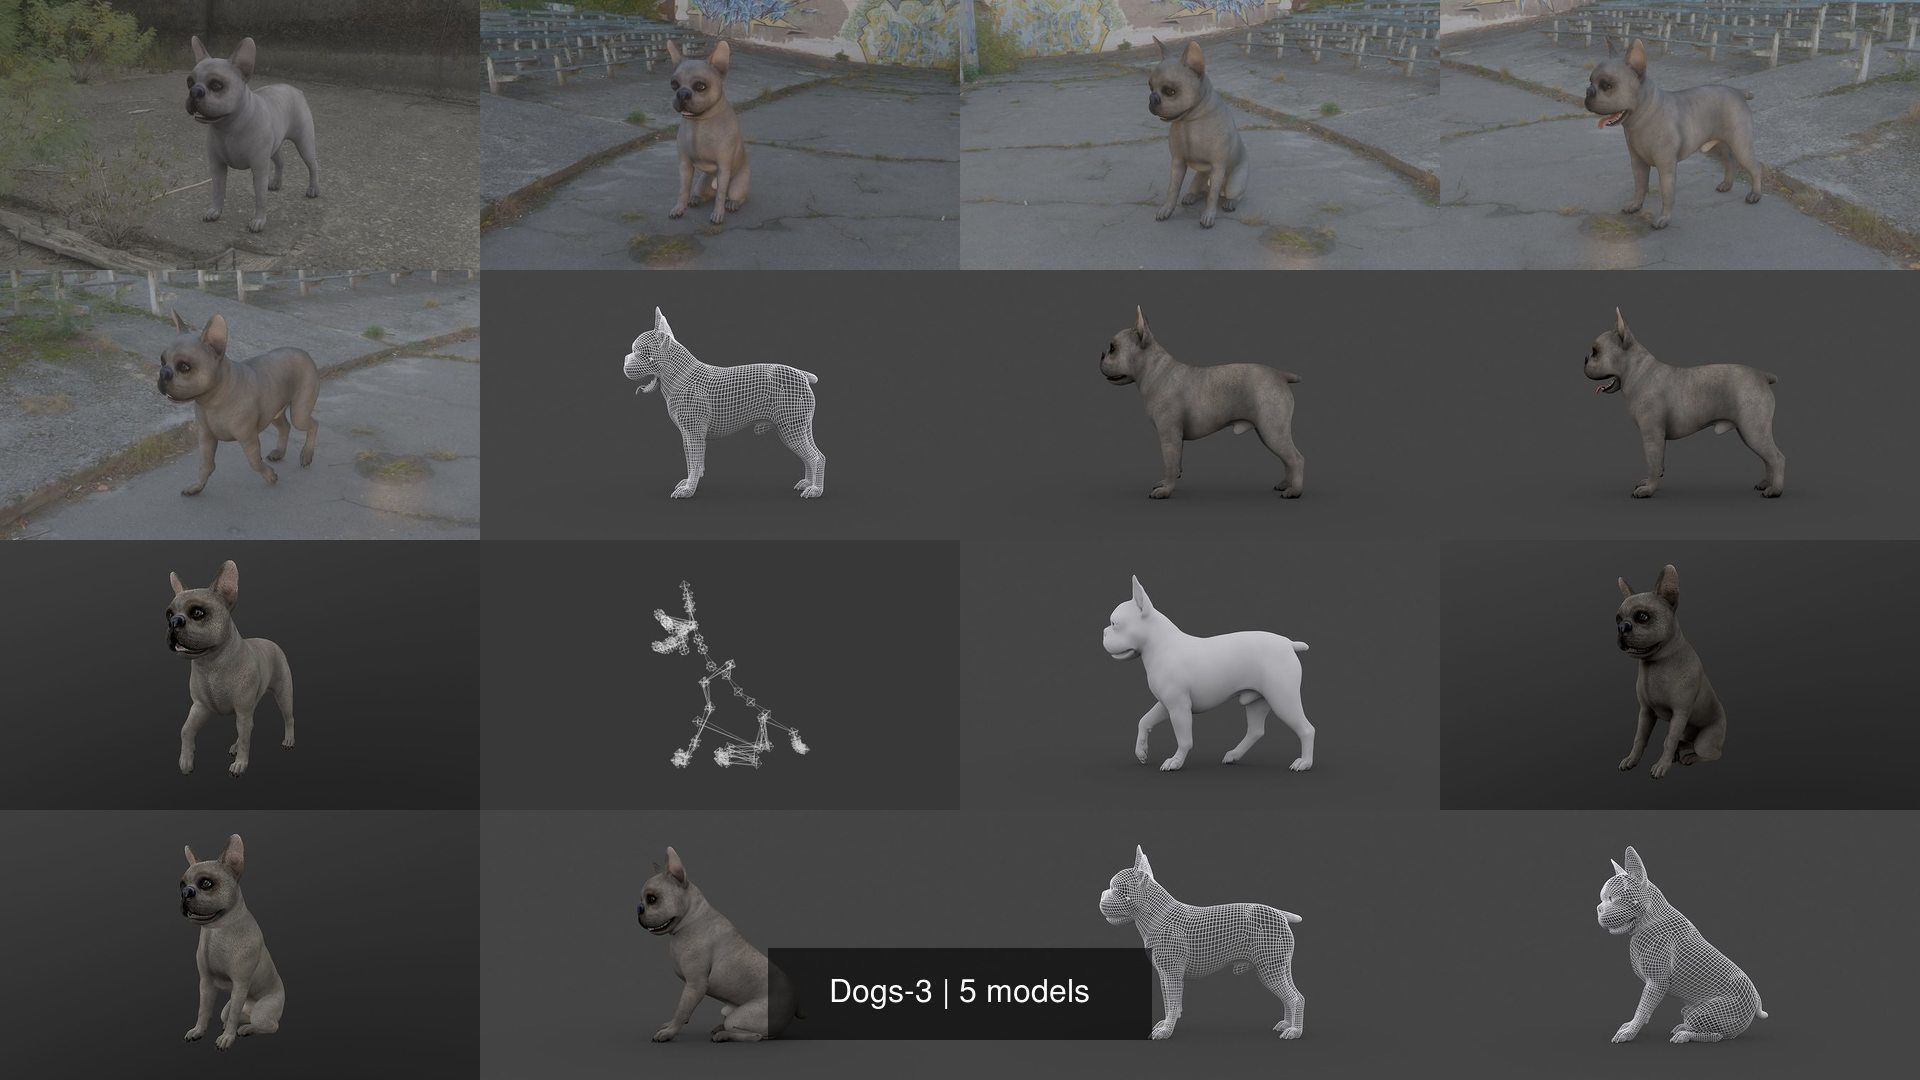 Dogs-3